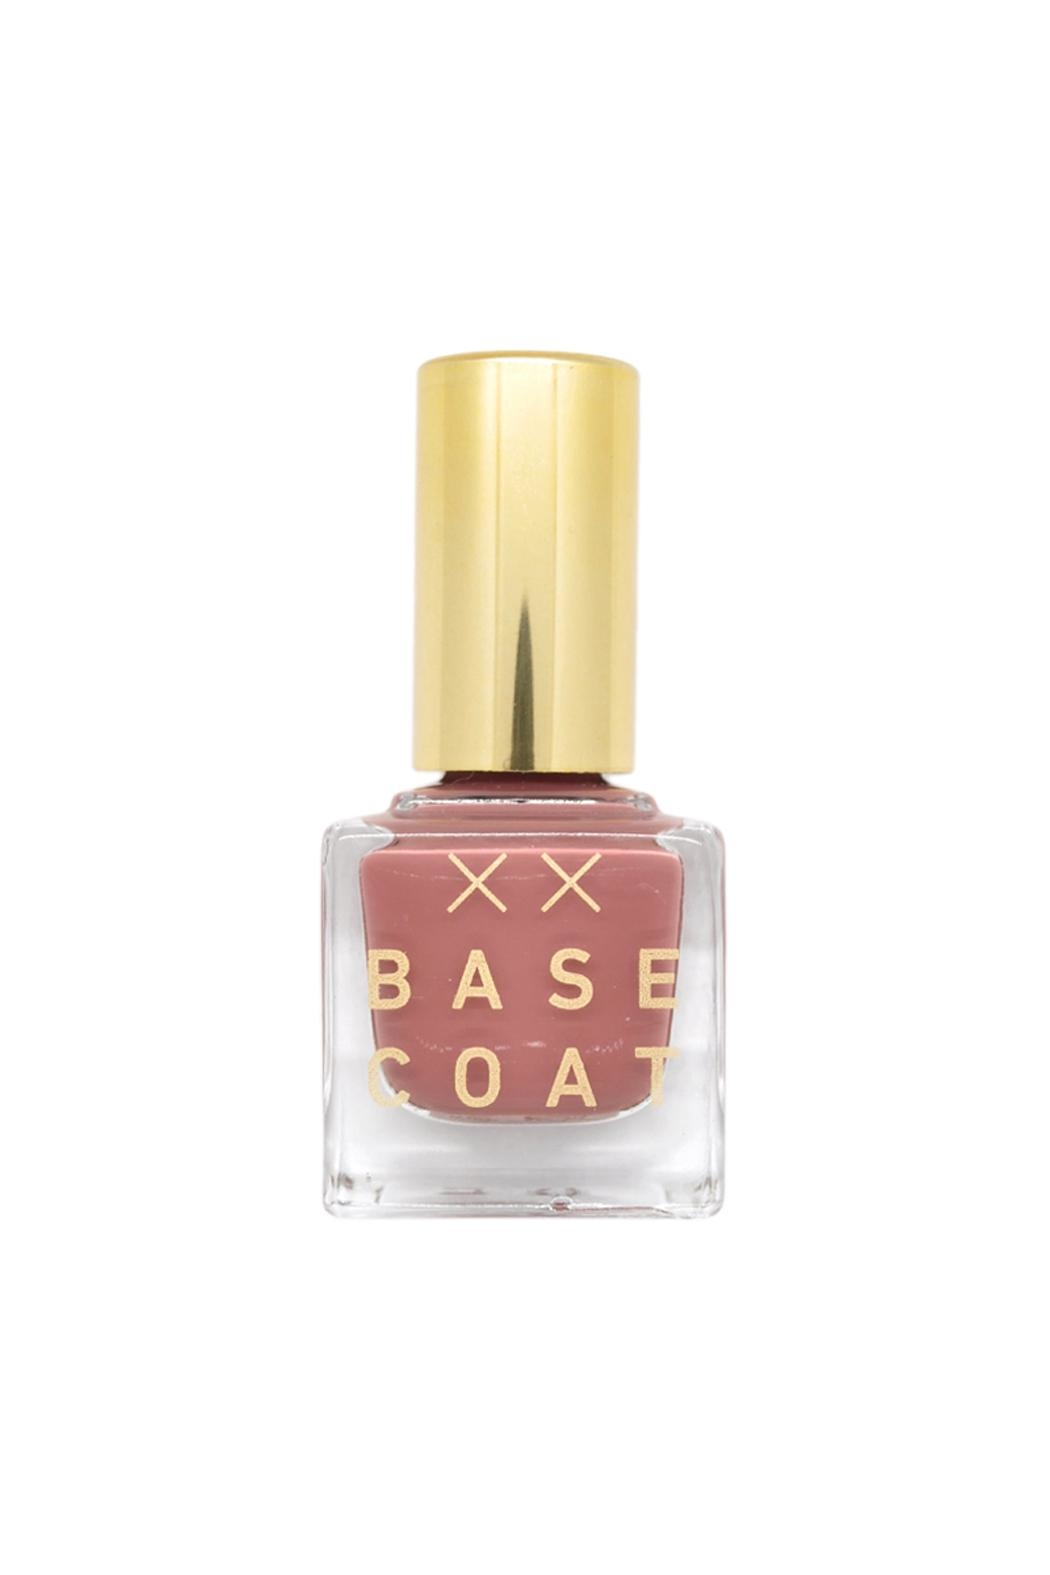 Base Coat Toxic-Free Nail Polish from Portland by Vintalier — Shoptiques